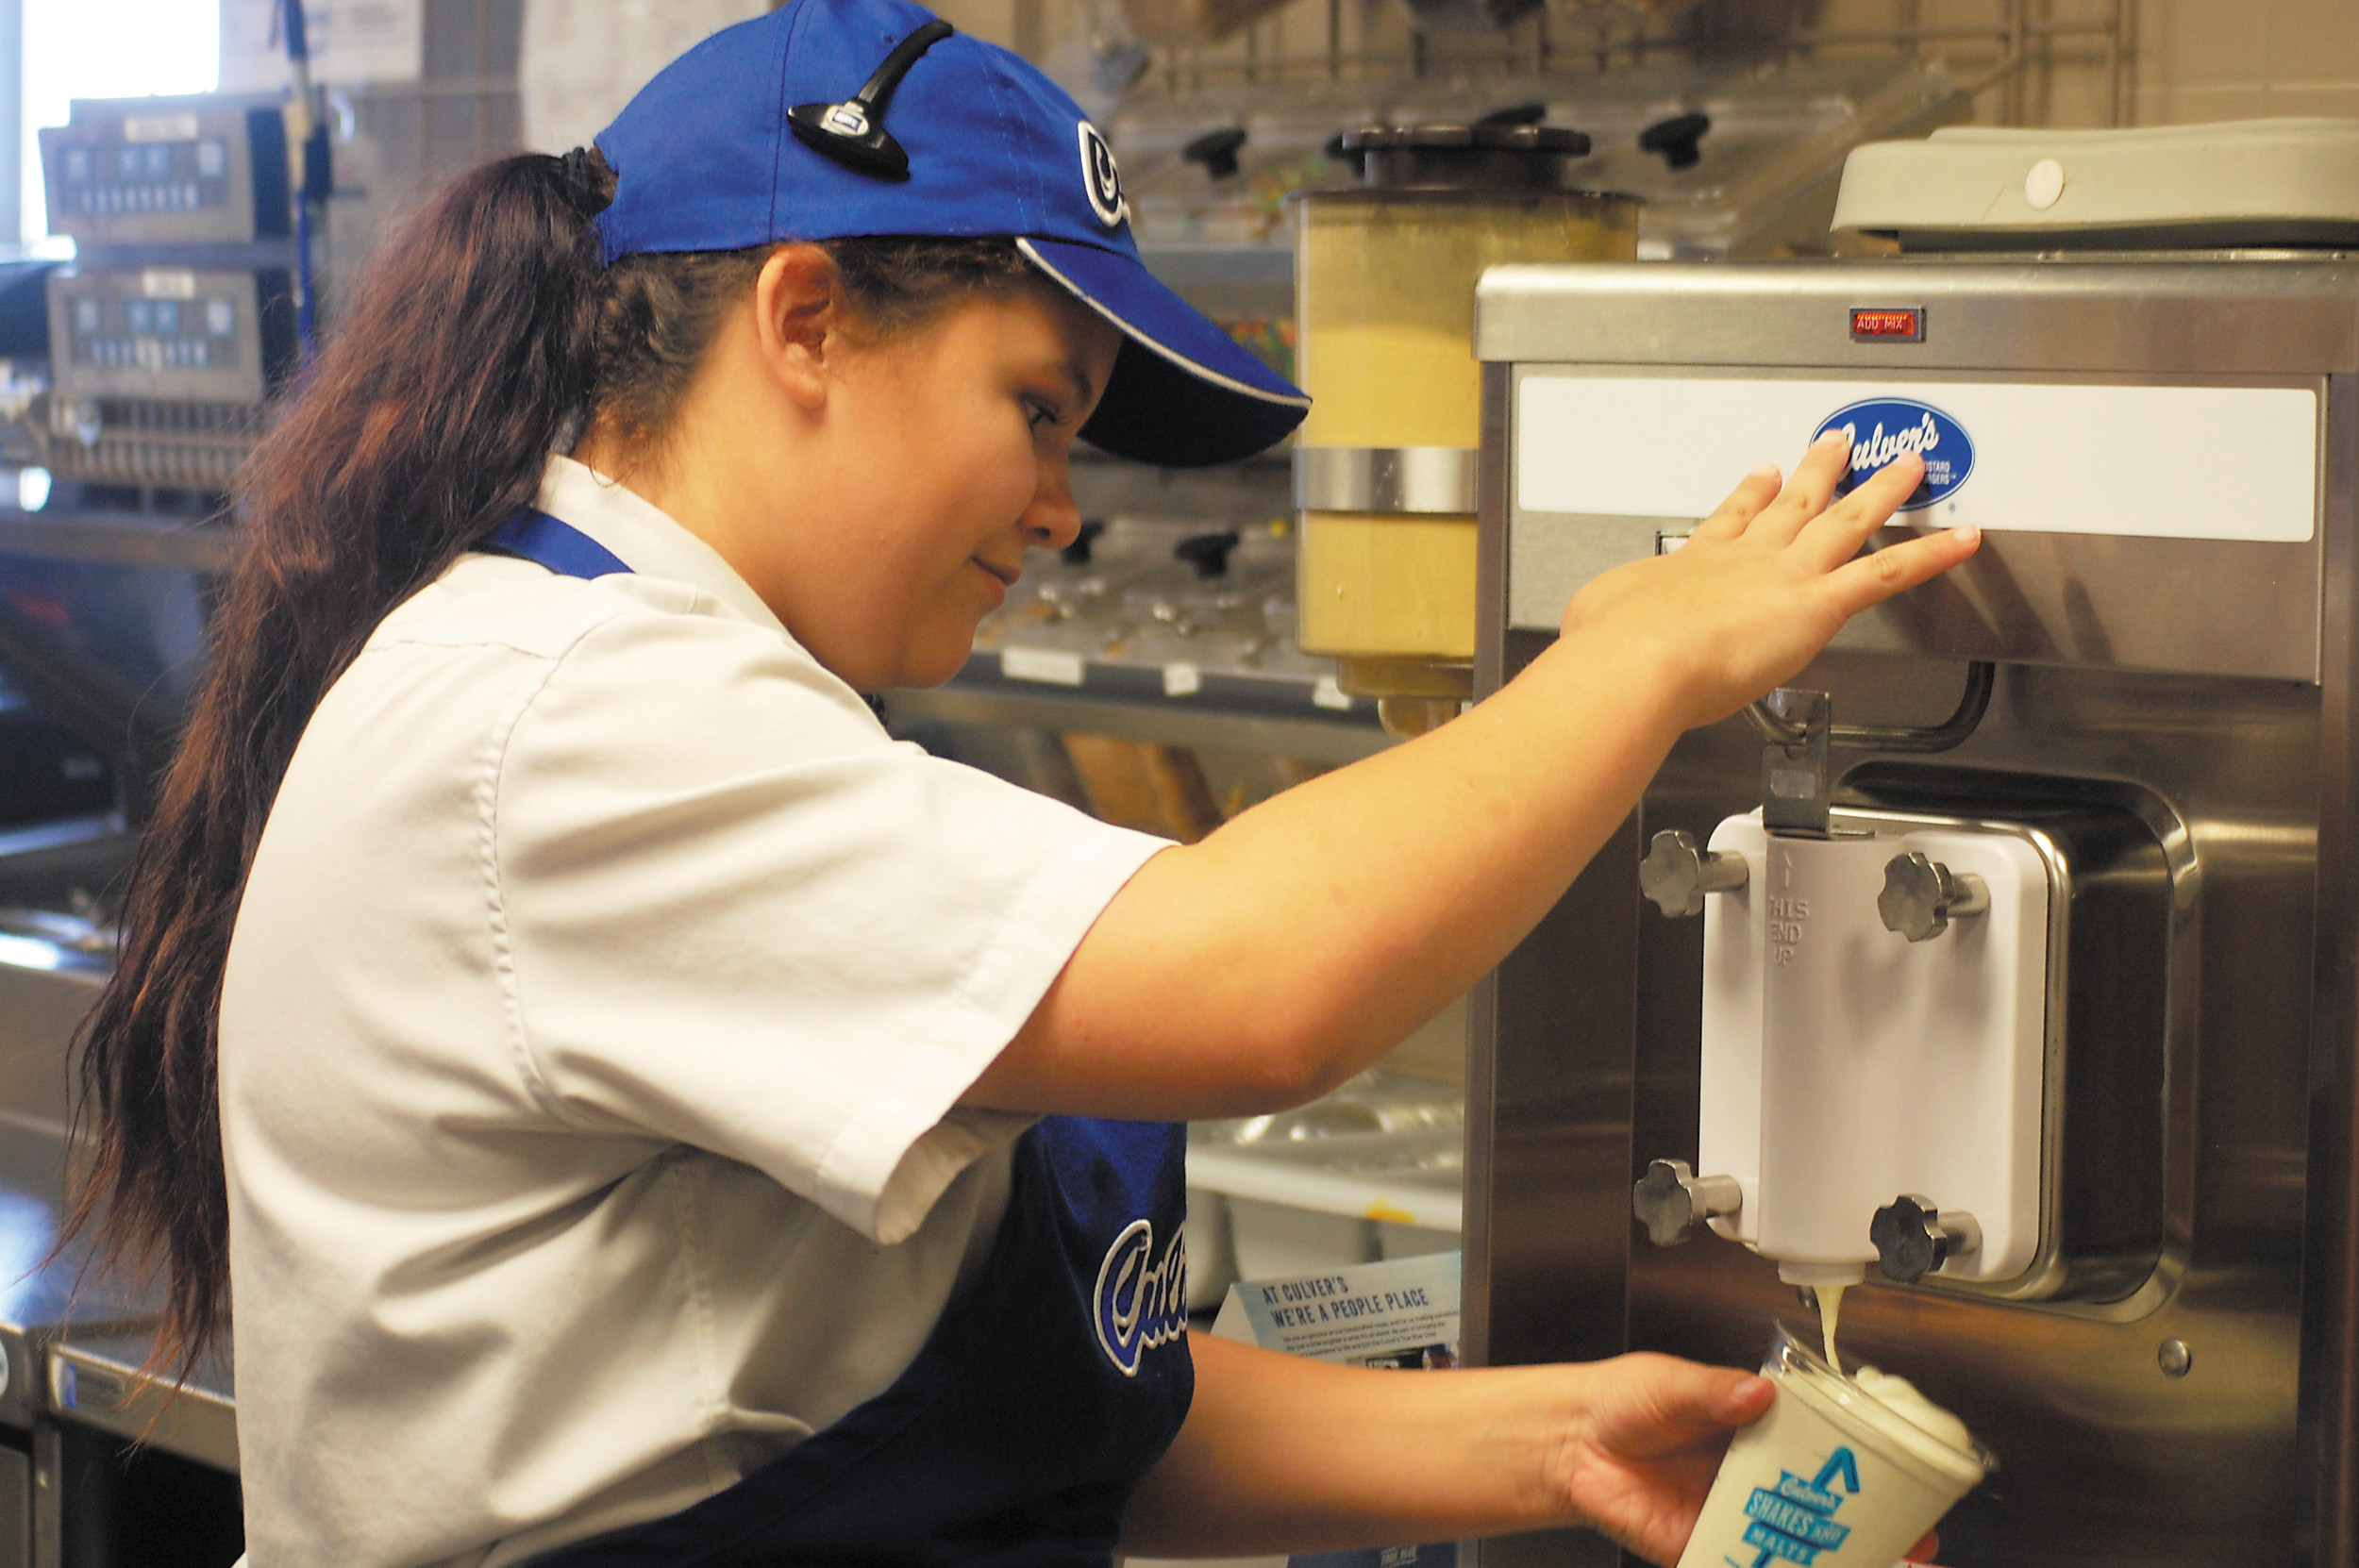 news parker colorado net caela mortimore 17 works the ice cream machine in the kitchen of culver s restaurant